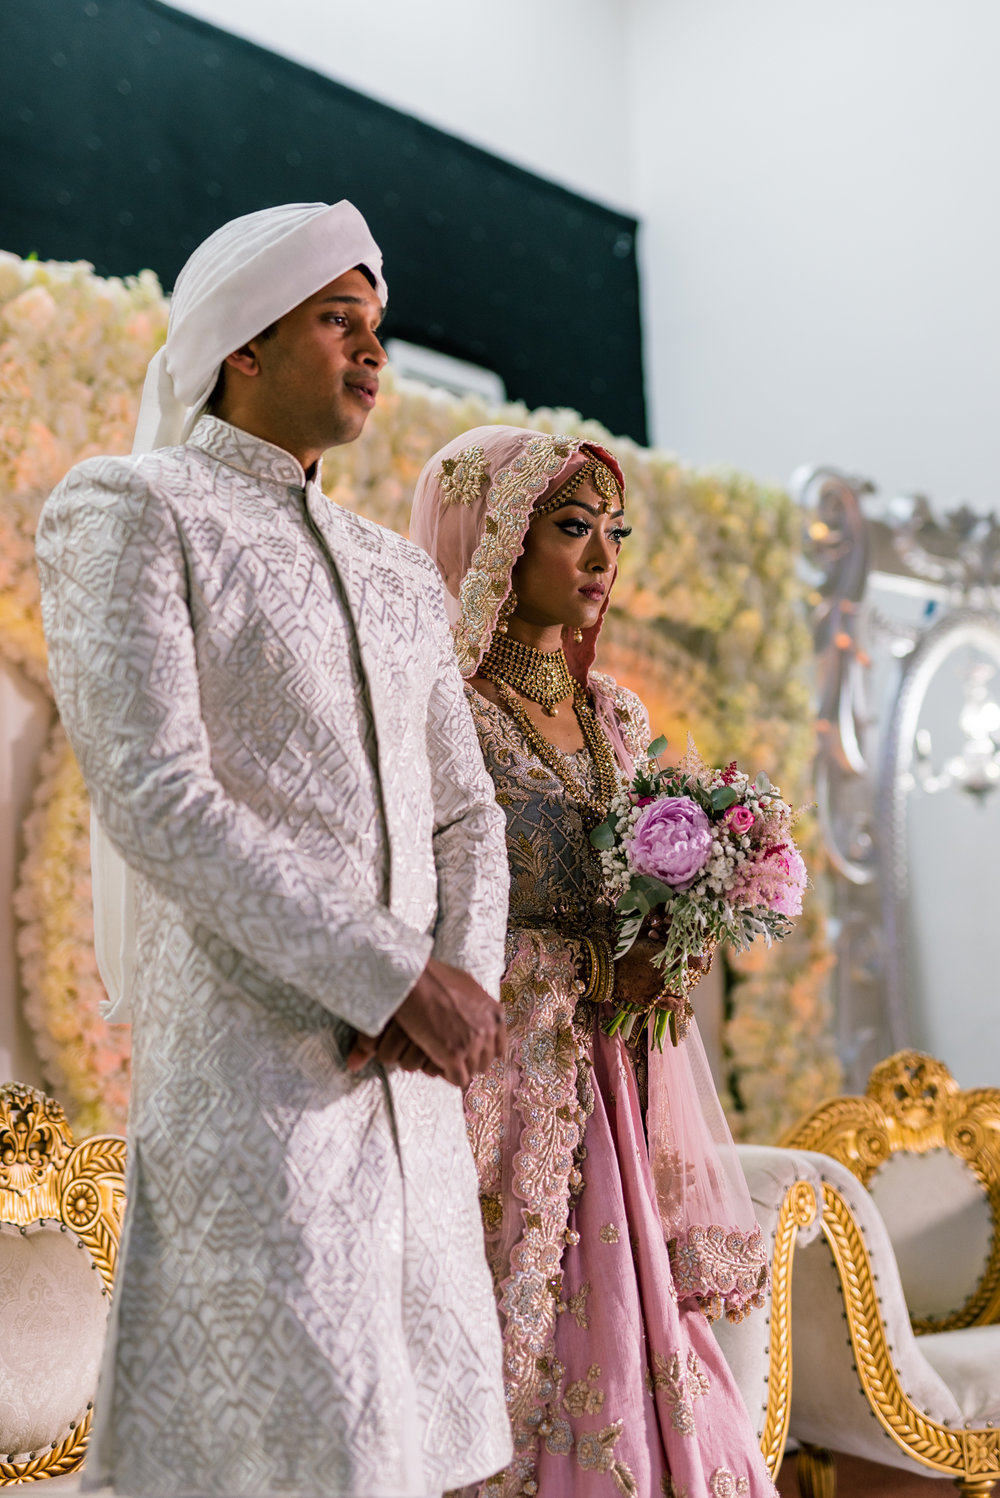 the bride and groom stand in front of their guests, waiting for the start of the wedding ceremony